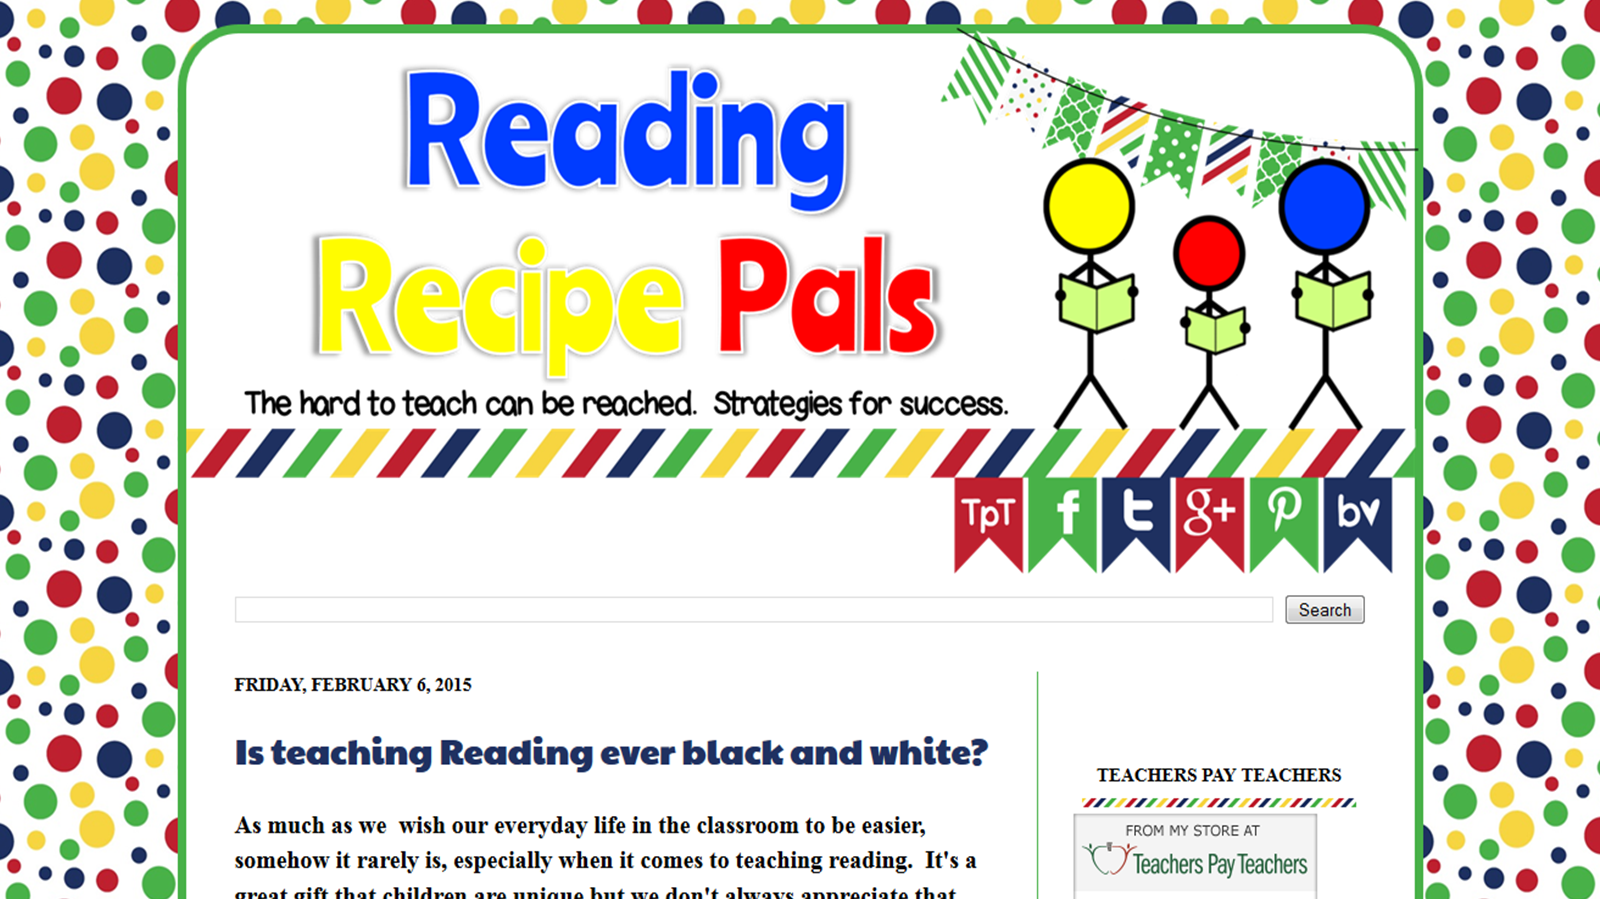 http://readingrecipepals.blogspot.com/